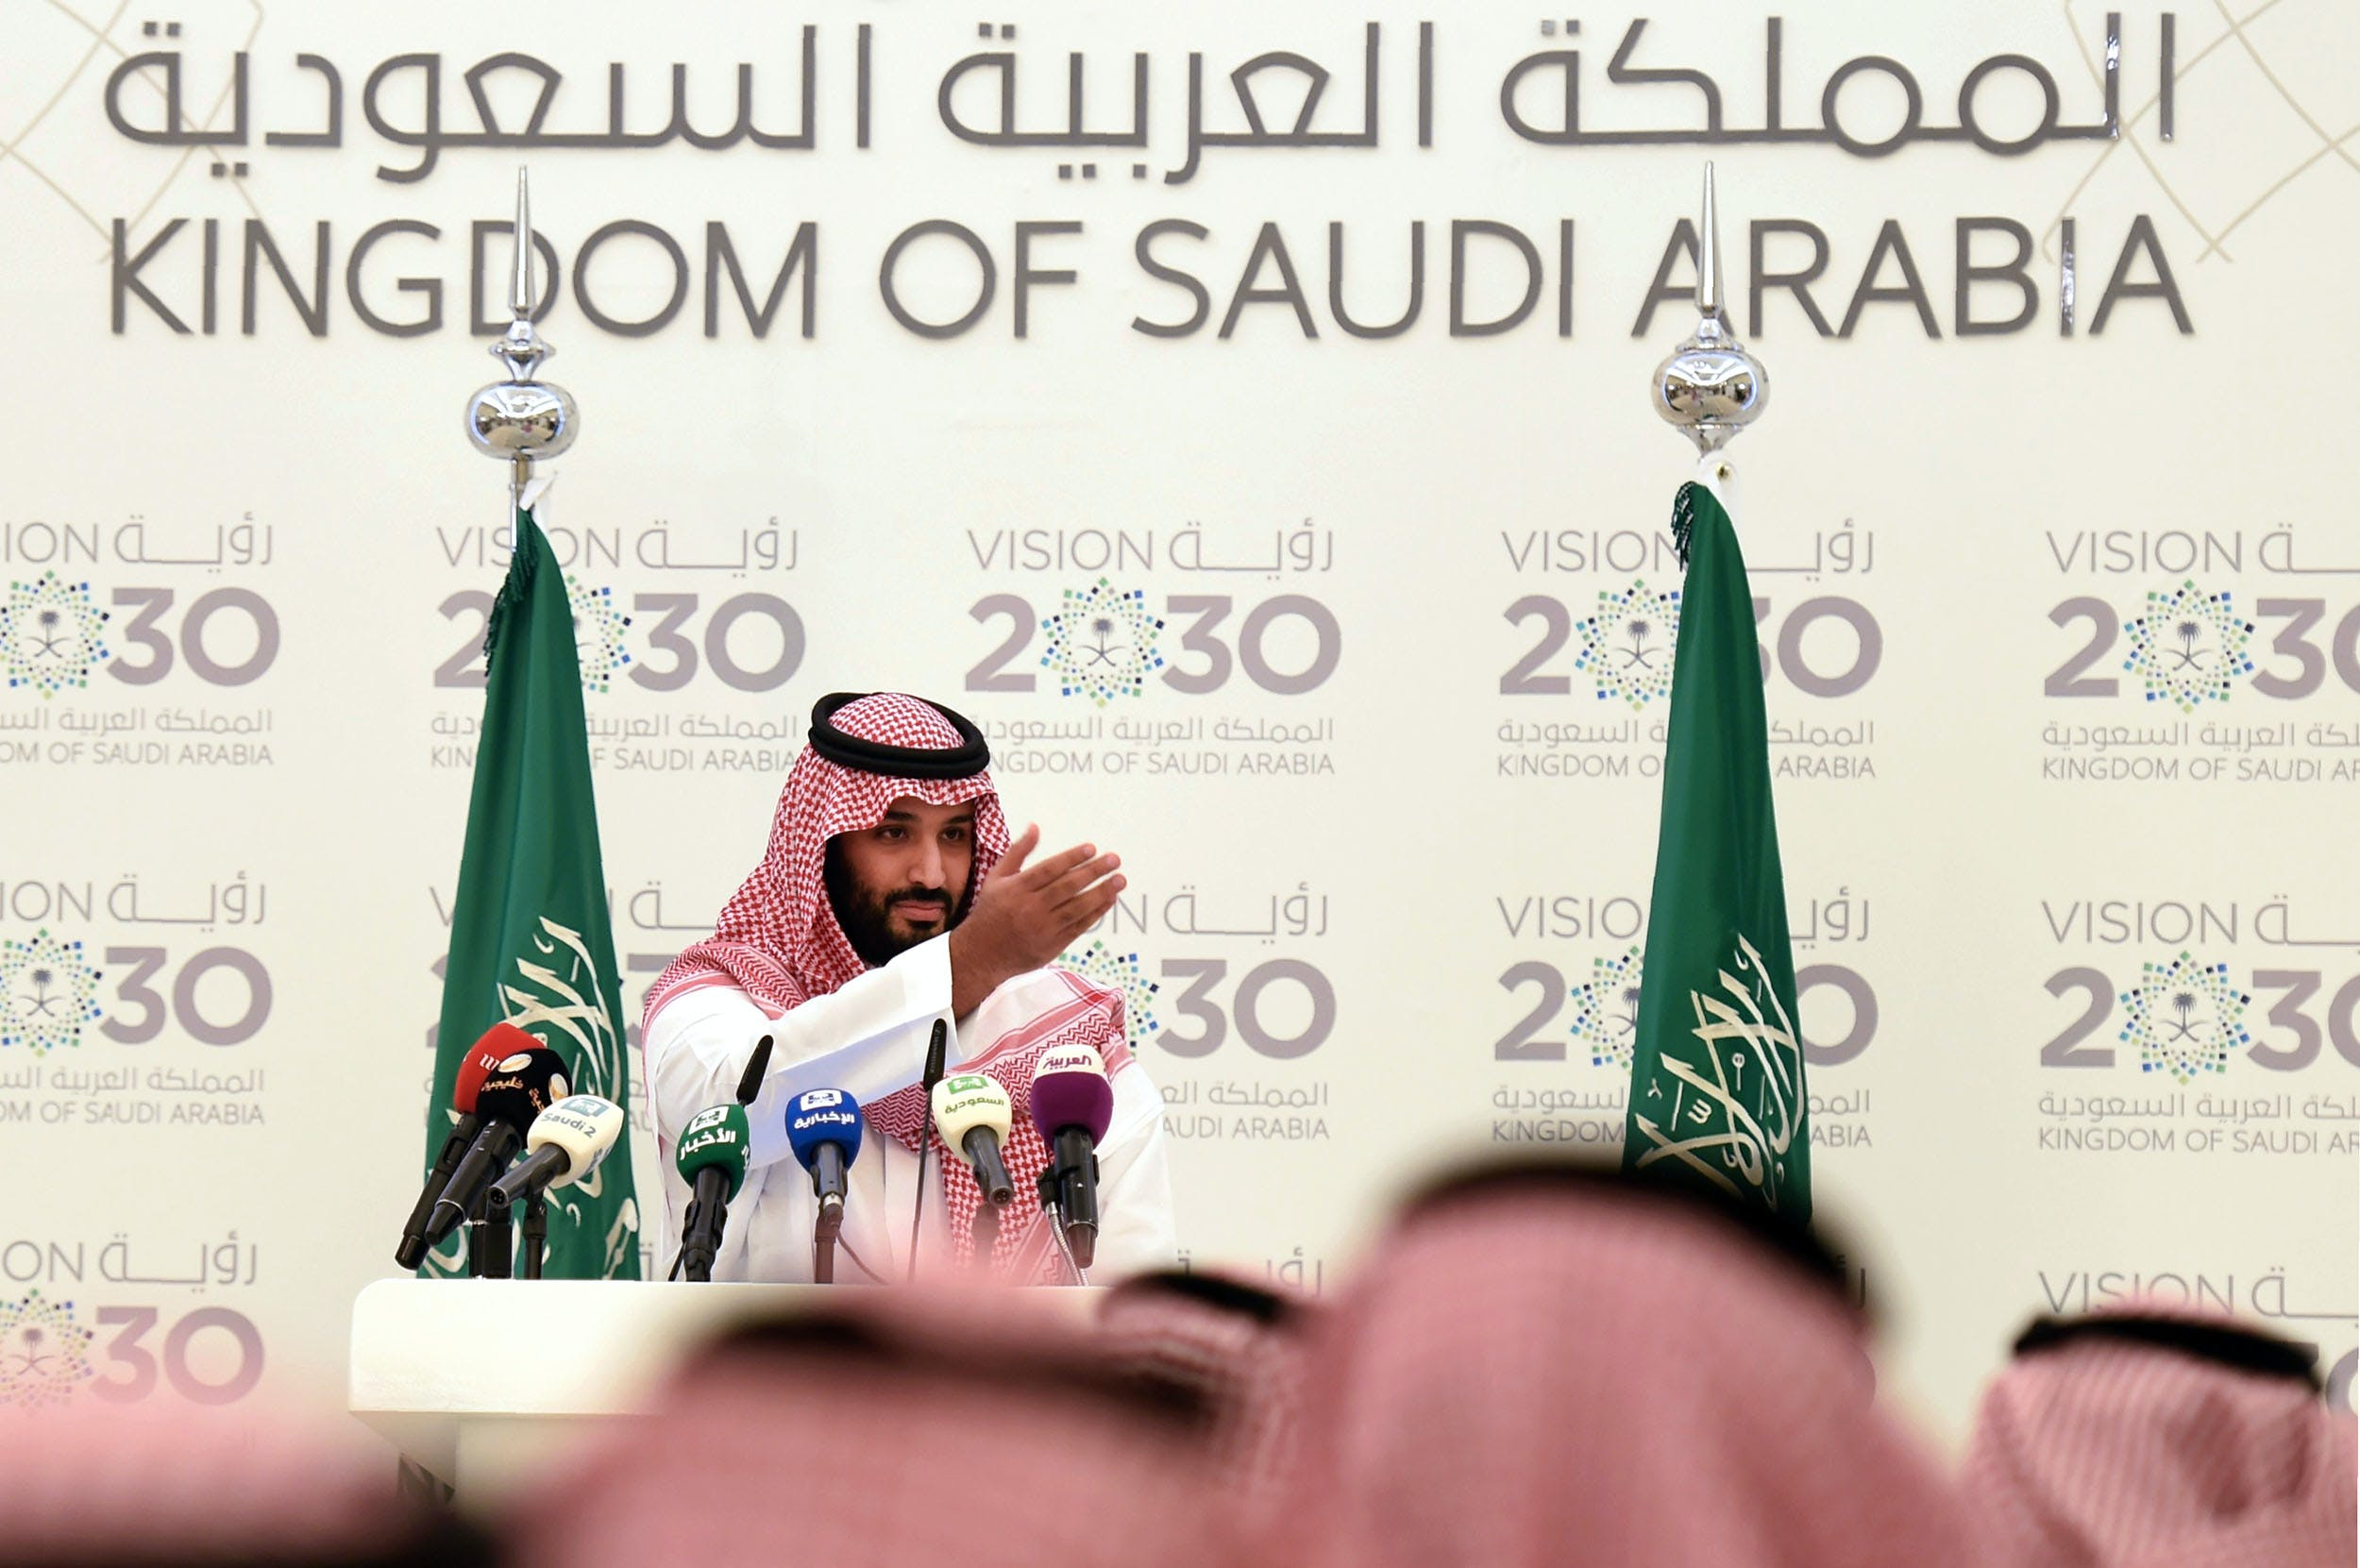 "Saudi Defense Minister and Deputy Crown Prince Mohammed bin Salman gives a press conference in Riyadh, on April 25, 2016.The key figure behind the unveiling of a vast plan to restructure the kingdom's oil-dependent economy, the son of King Salman has risen to among Saudi Arabia's most influential figures since being named second-in-line to the throne in 2015. Salman announced his economic reform plan known as ""Vision 2030"". / AFP / FAYEZ NURELDINE (Photo credit should read FAYEZ NURELDINE/AFP/Getty Images)"